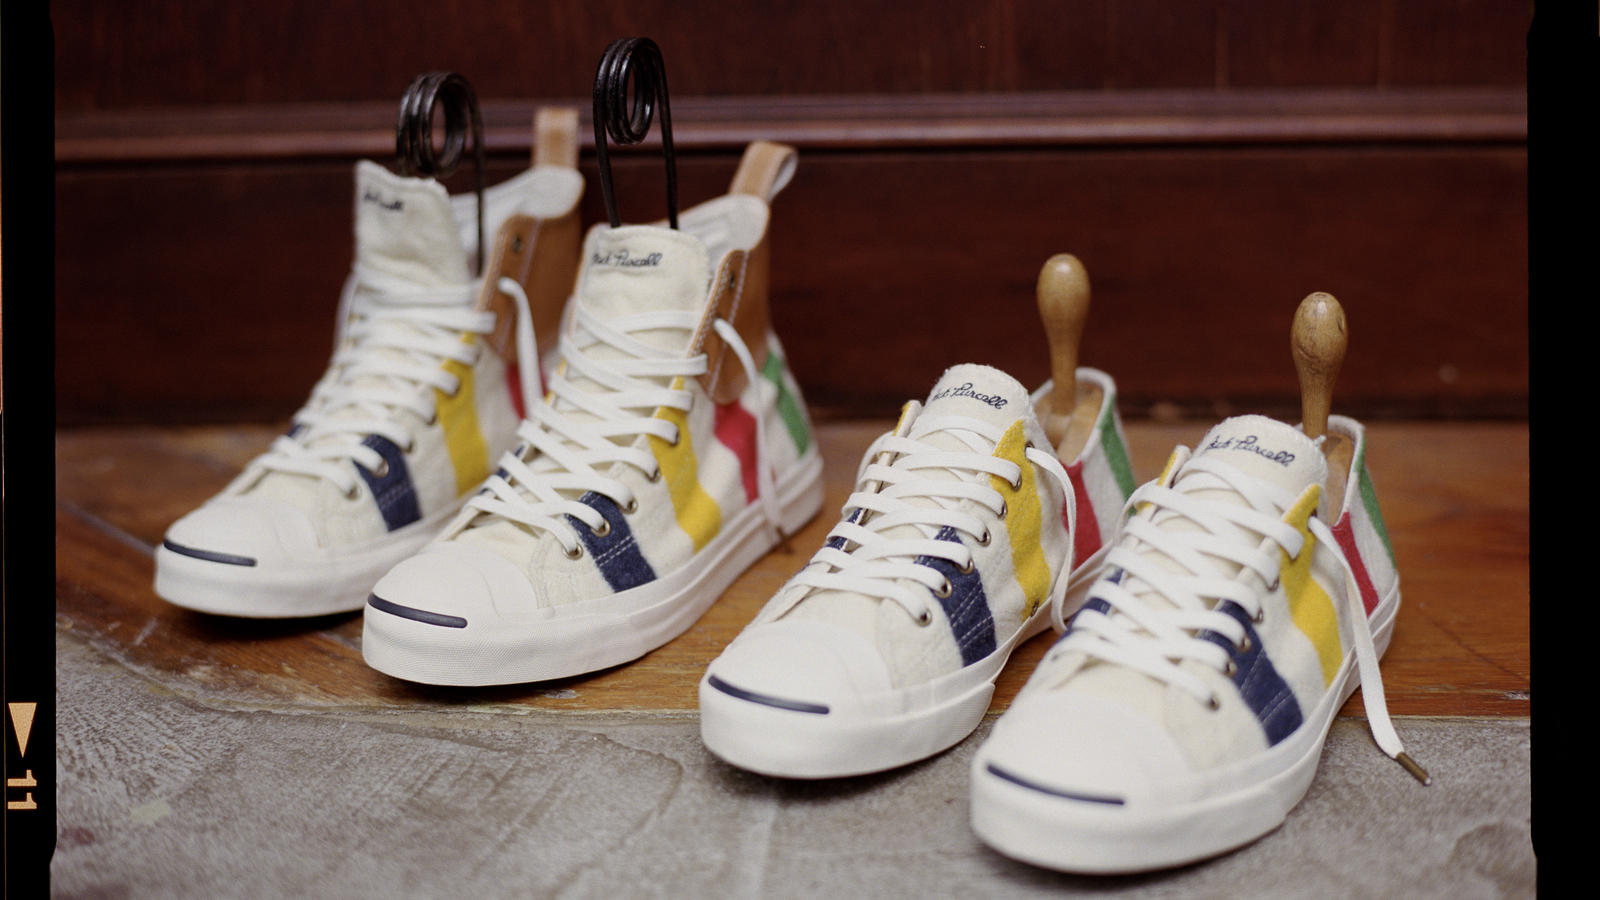 Converse X Hudsons Bay Company Collection Original